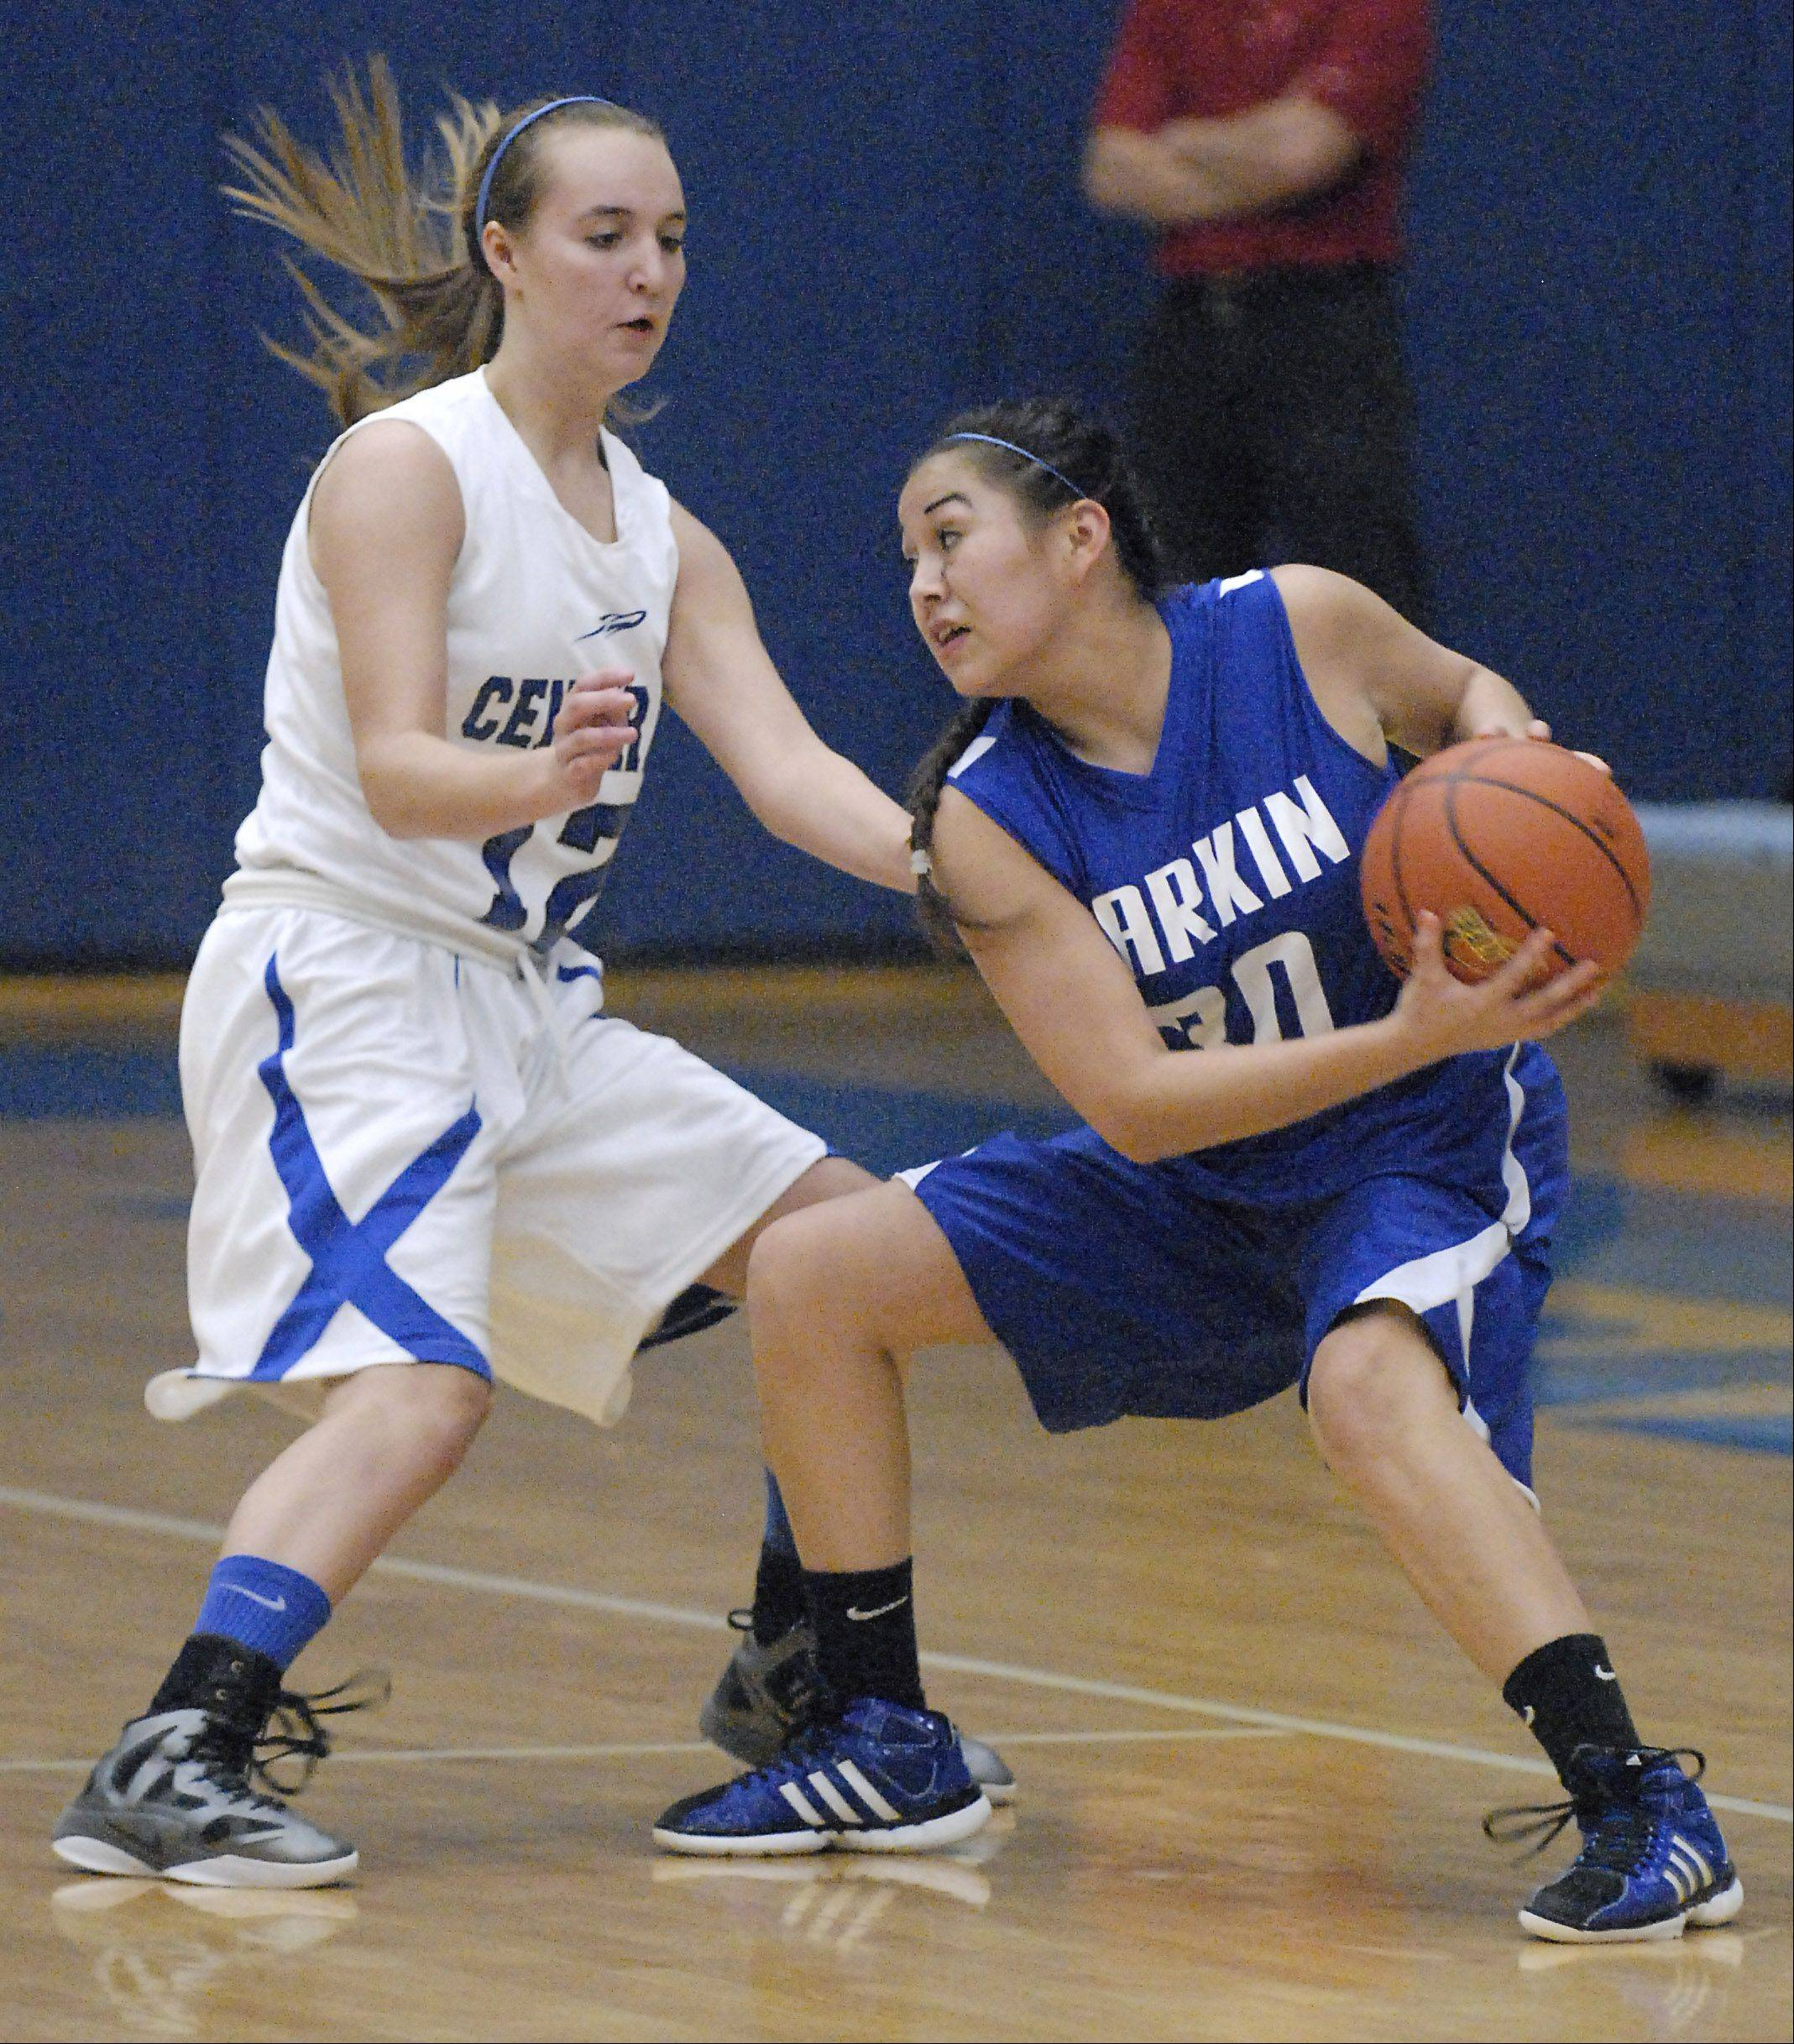 Larkin's Sky Evans looks to pass around Burlington Central's Shelby Holt in the first quarter on Friday.